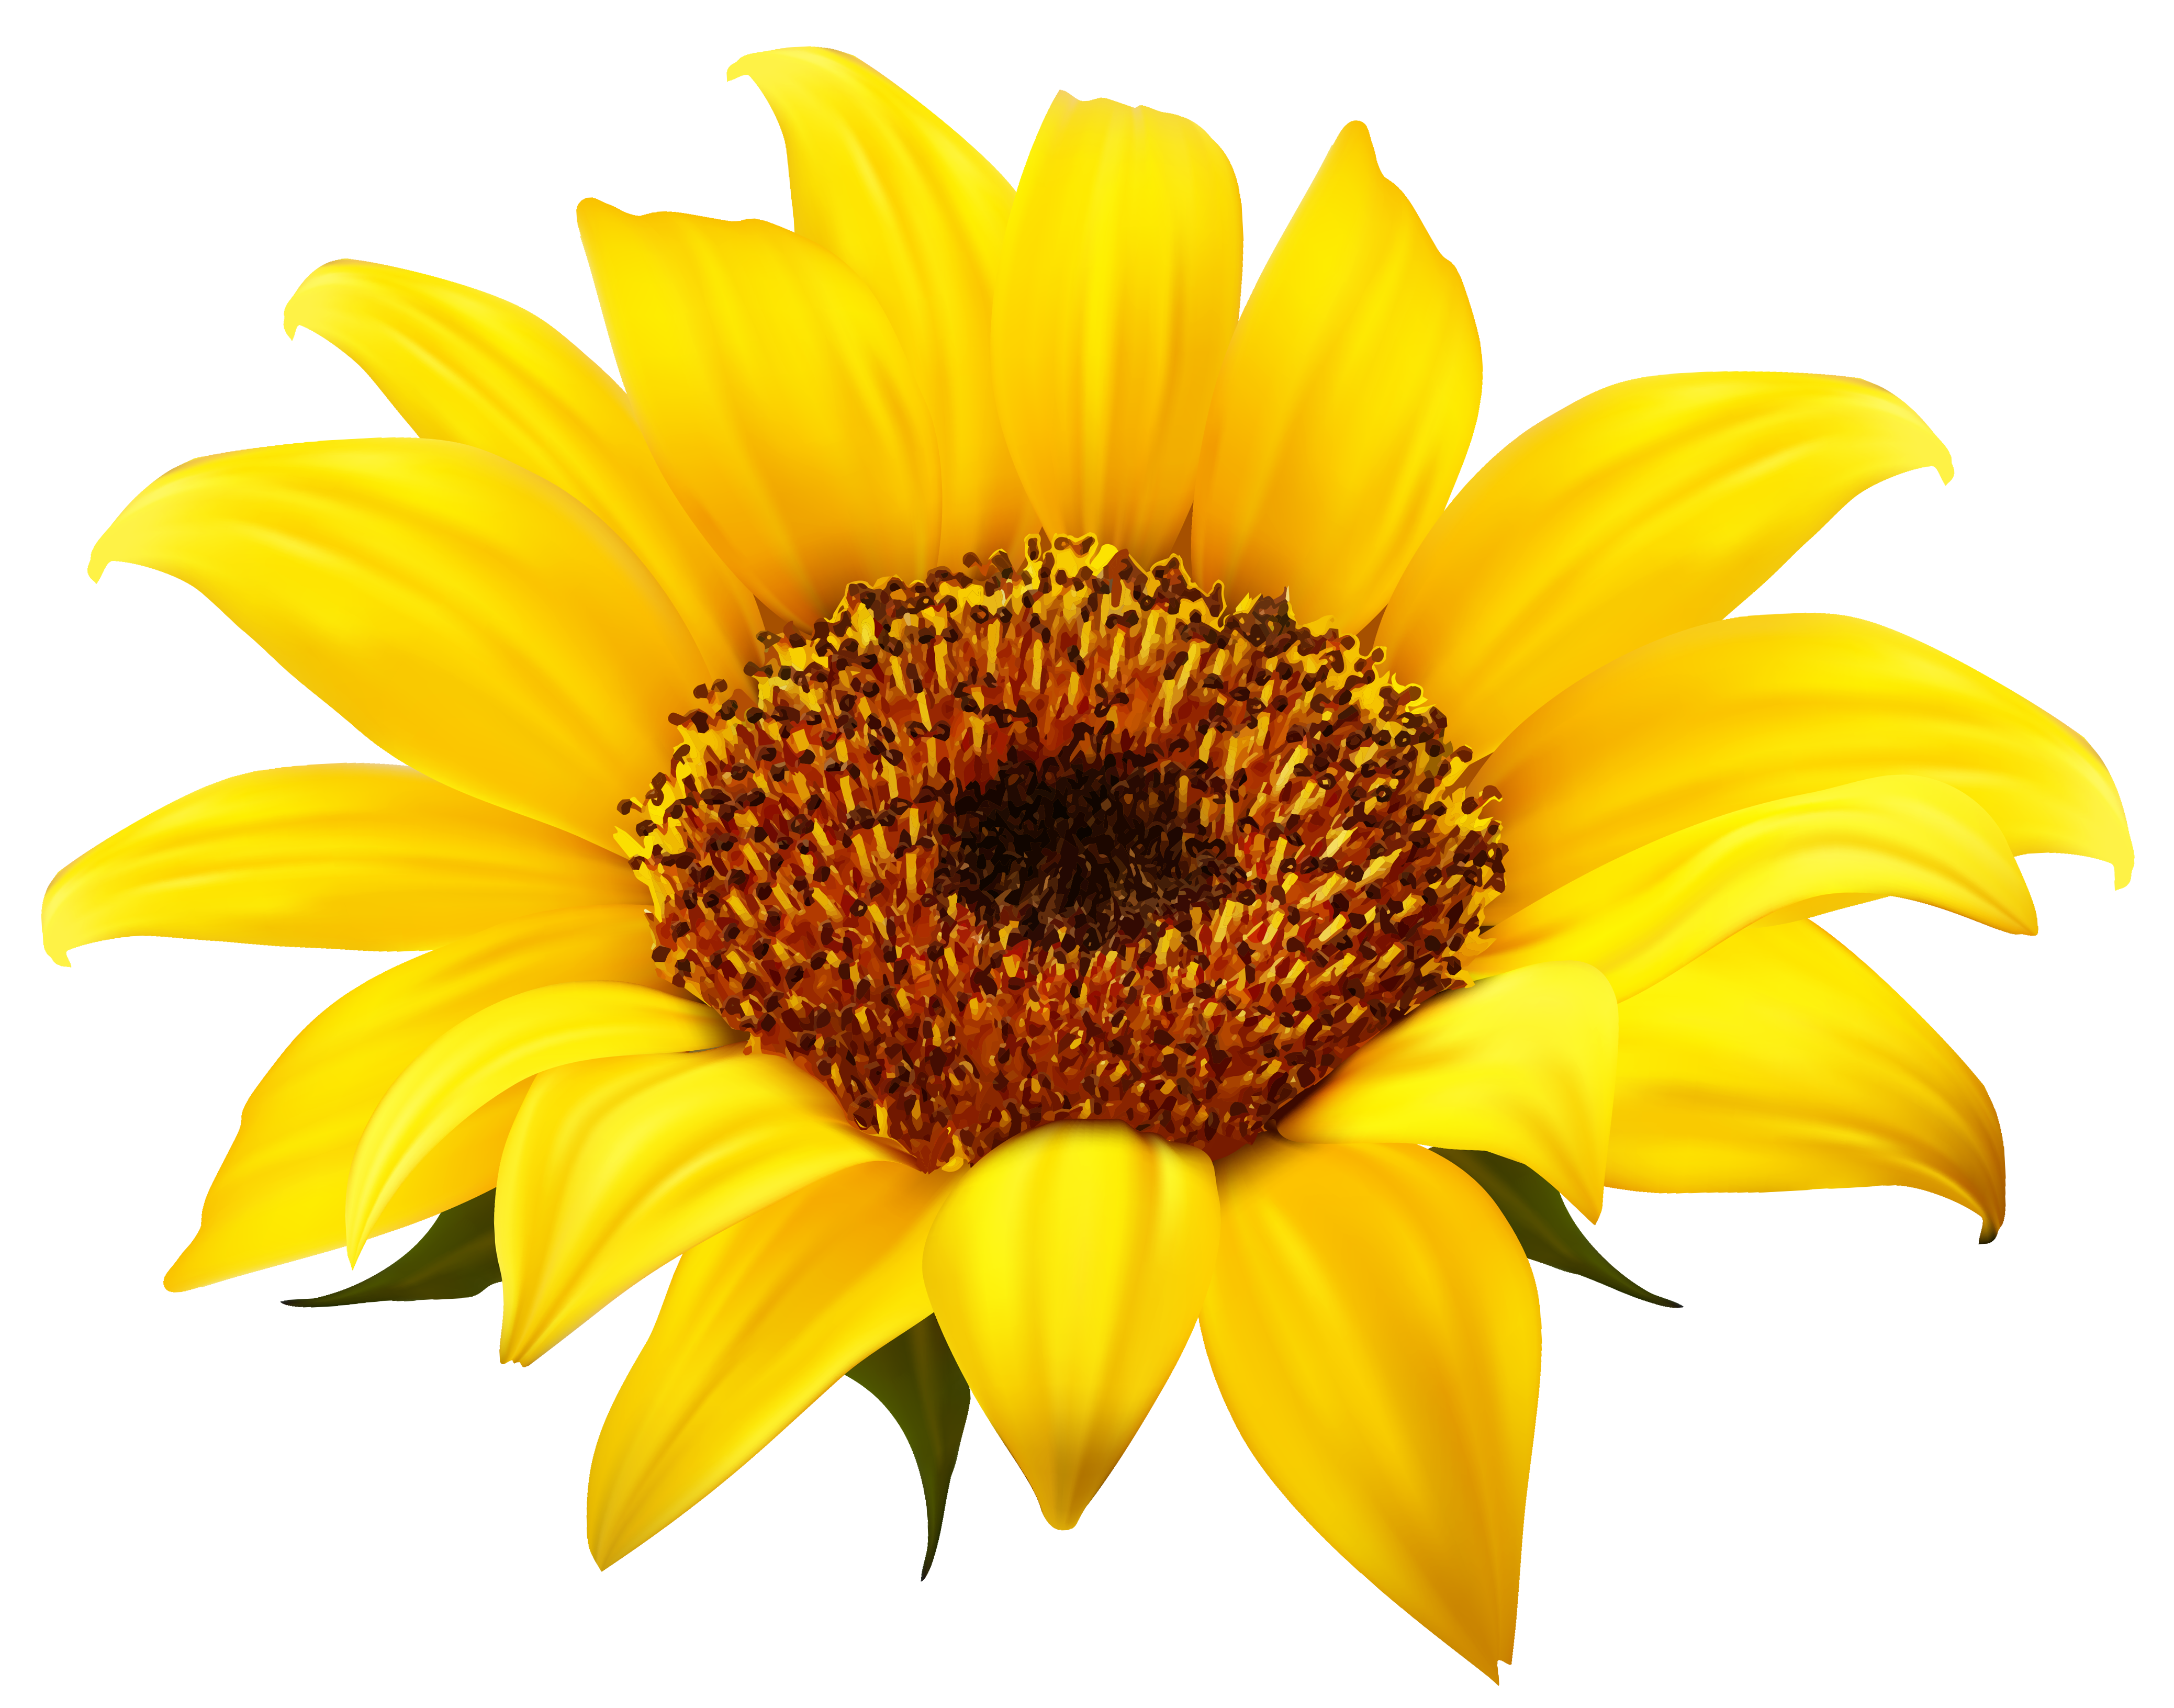 Pin by Durgesh Pandey on Download Sunflower clipart